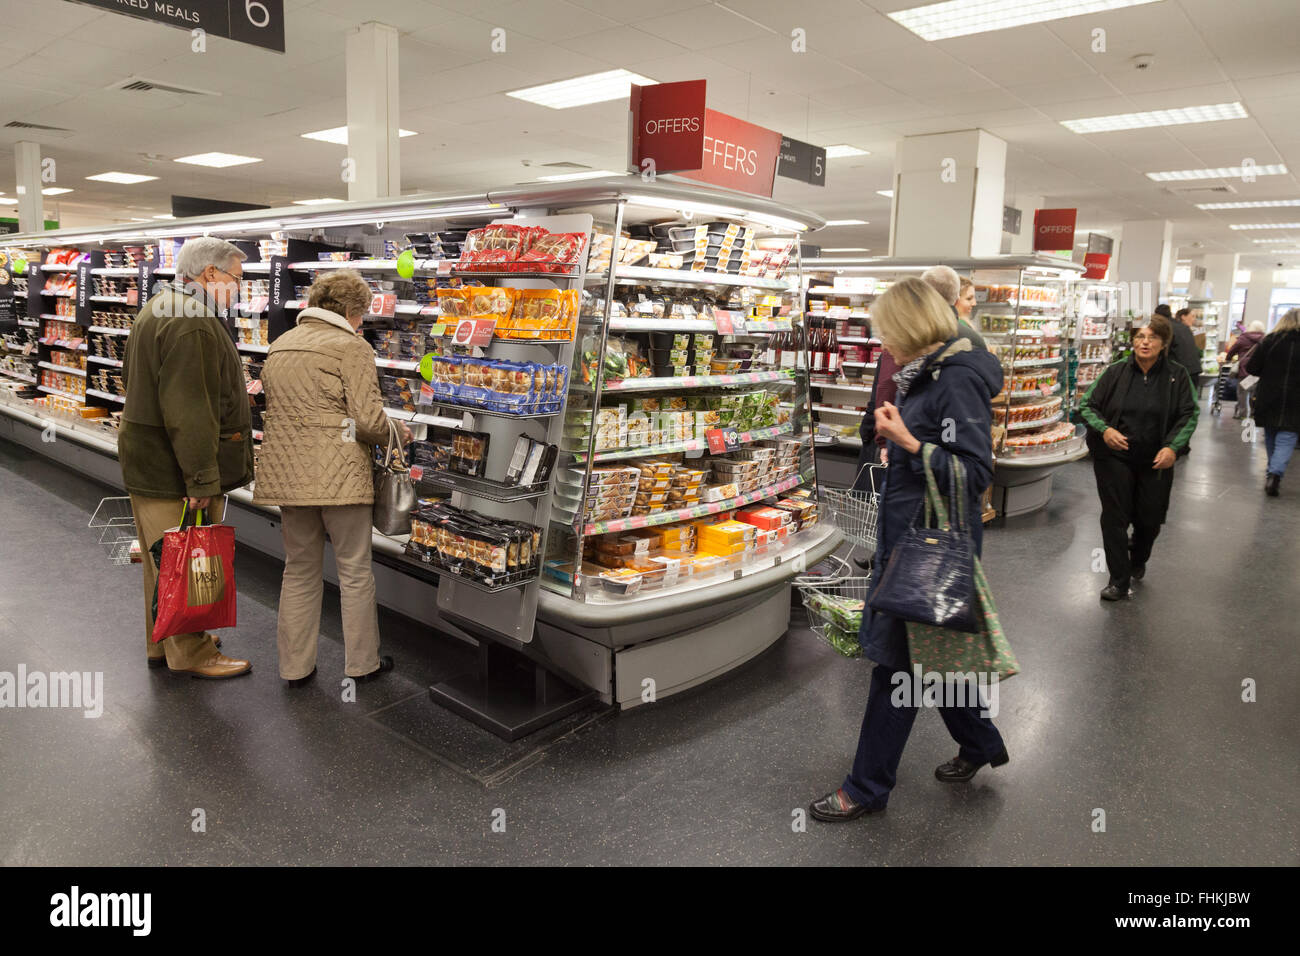 people-shopping-for-food-in-an-marks-and-spencer-ms-store-cambridge-FHKJBW.jpg?profile=RESIZE_400x